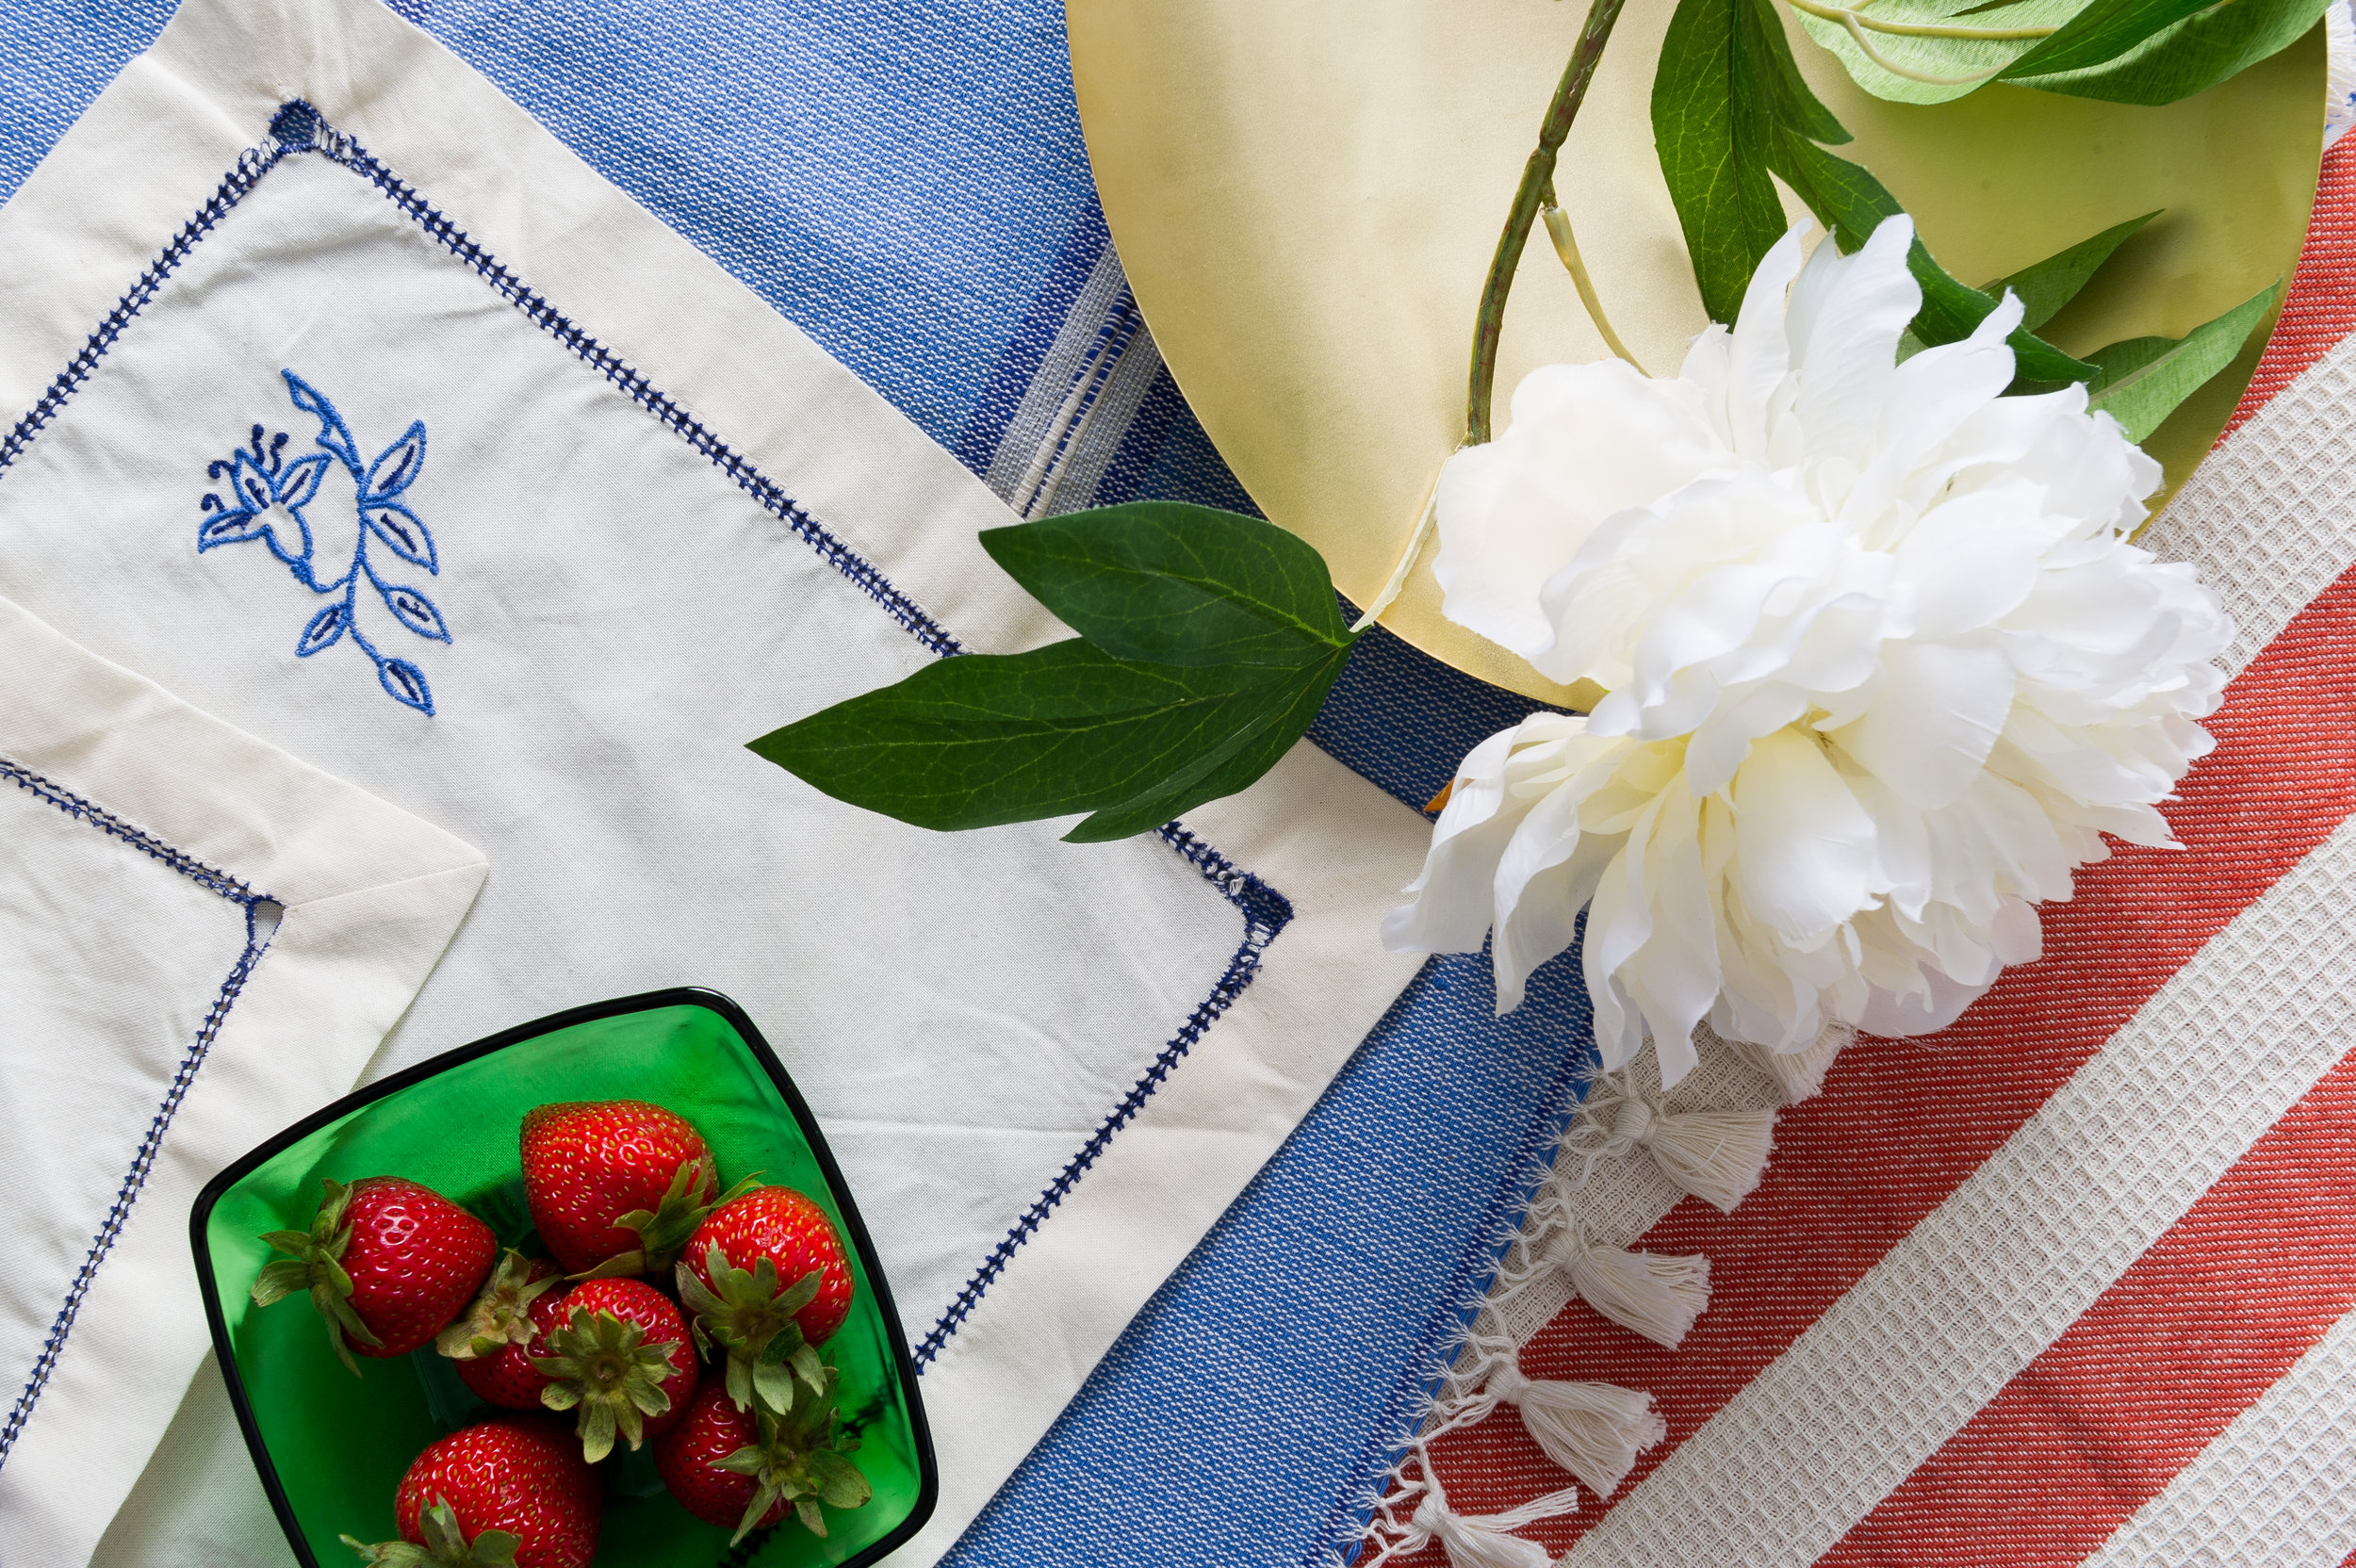 Pastoral Napkin, Vesta Table Runner and Vesta Kitchen Towel all made with 100% Organic cotton.